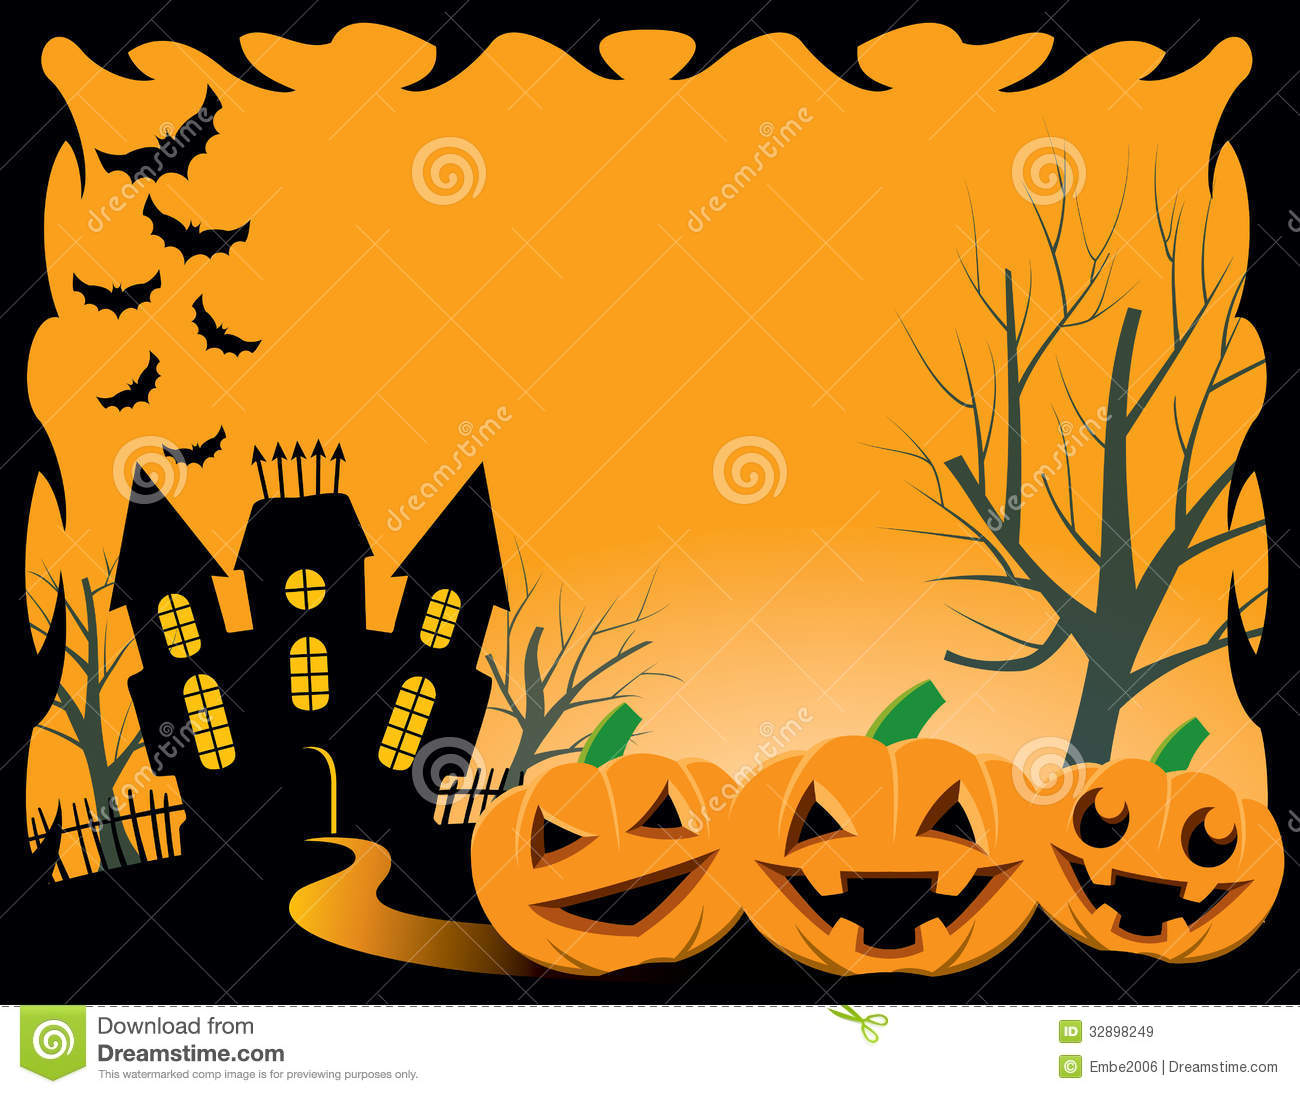 Free Cute Fall Wallpapers Fond De Halloween Illustration De Vecteur Illustration Du